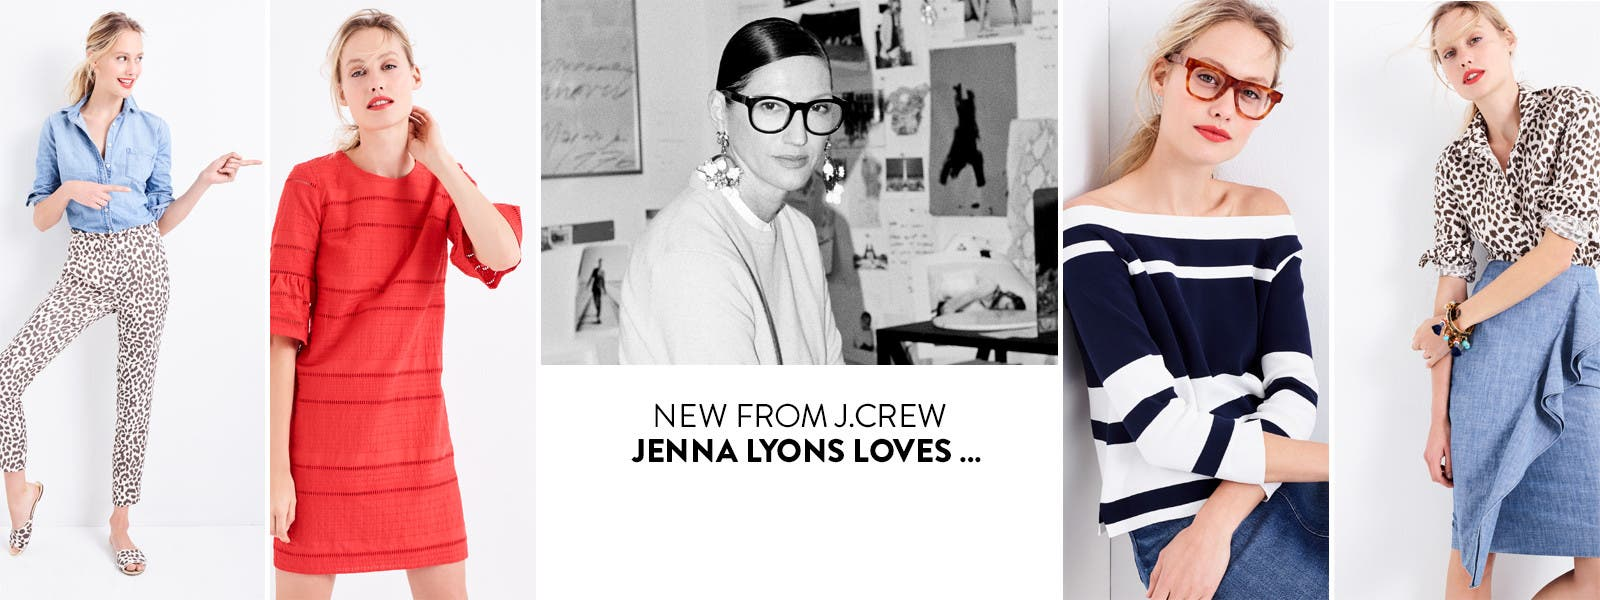 J.Crew new arrivals: what Jenna Lyons loves.